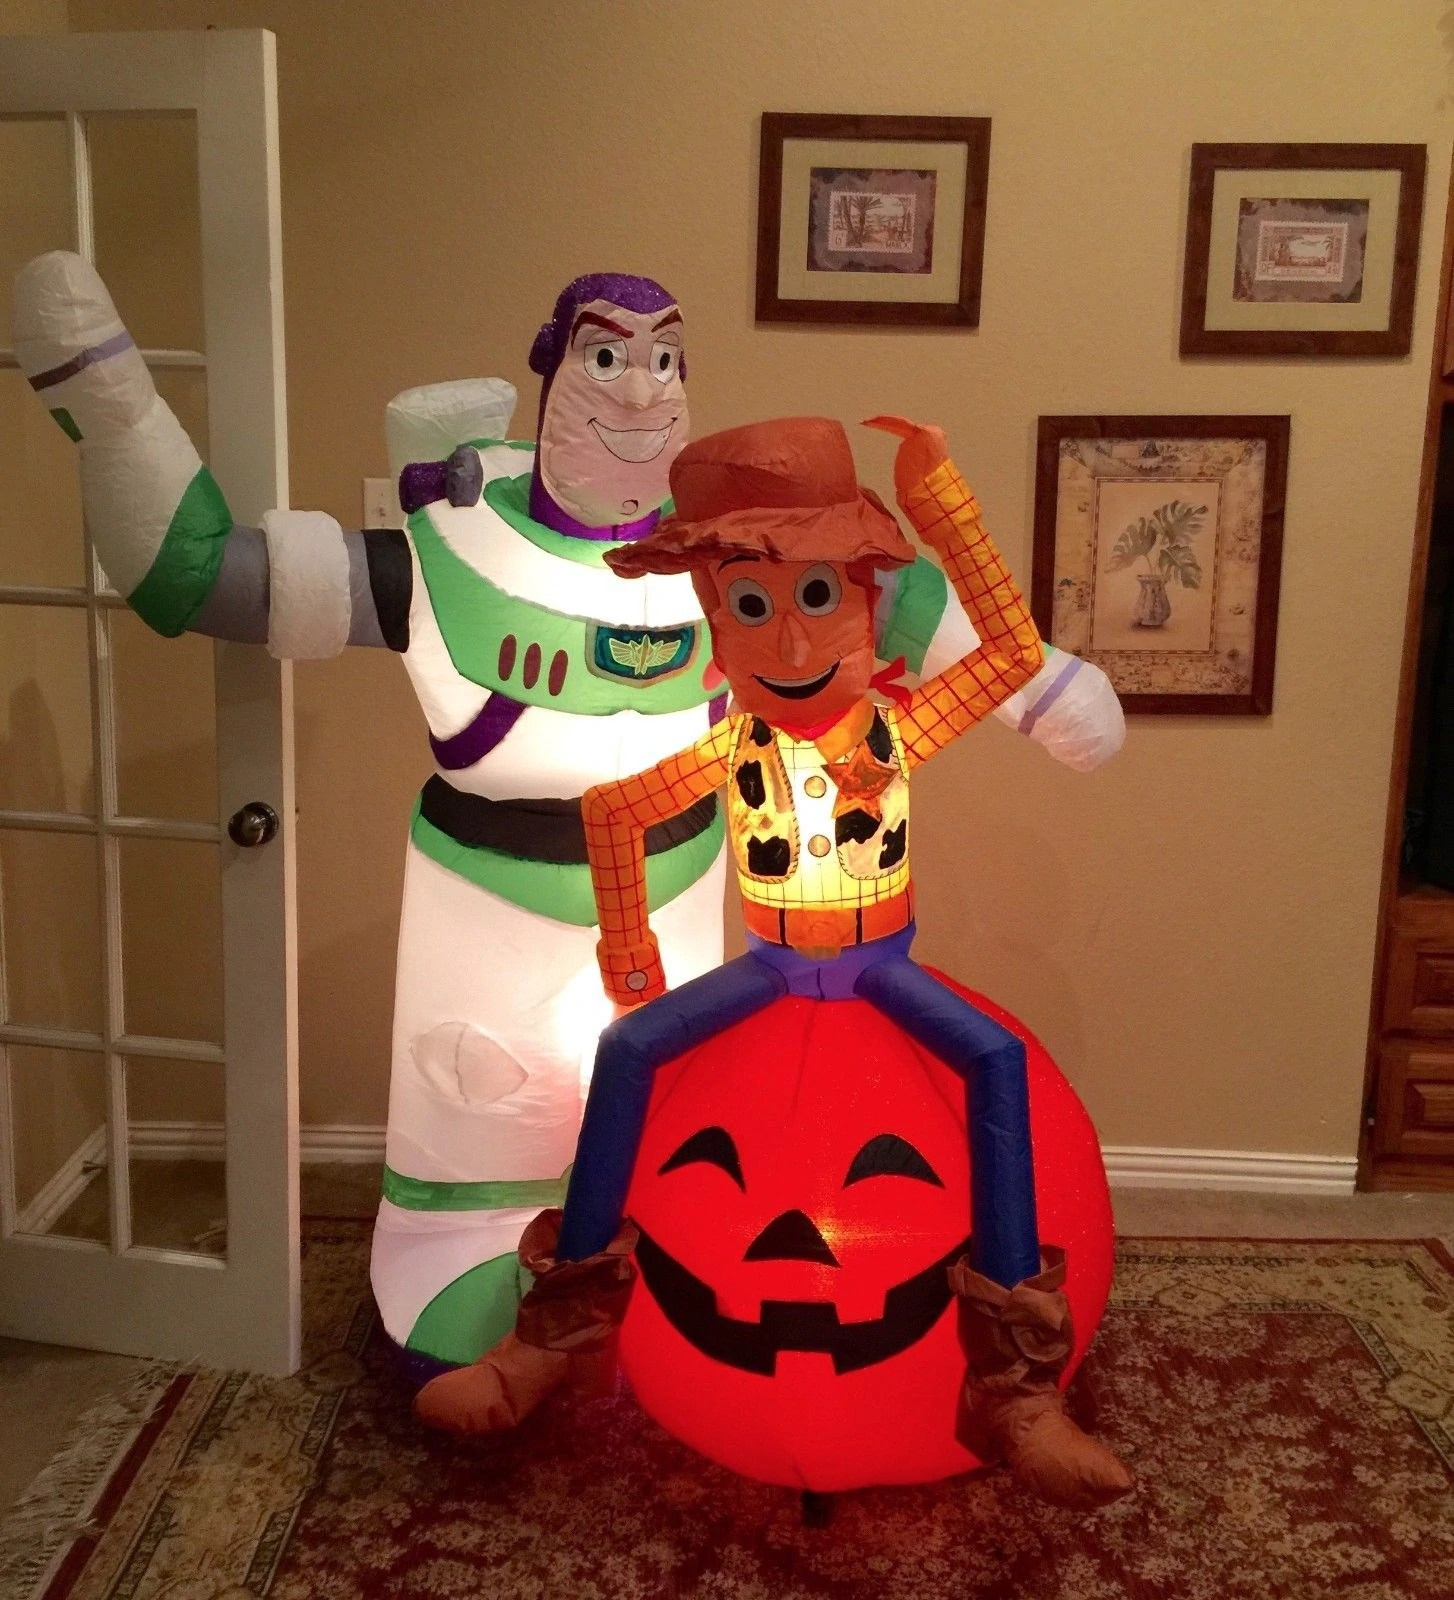 Image Gemmy Prototype Halloween Toy Story Woody Buzz